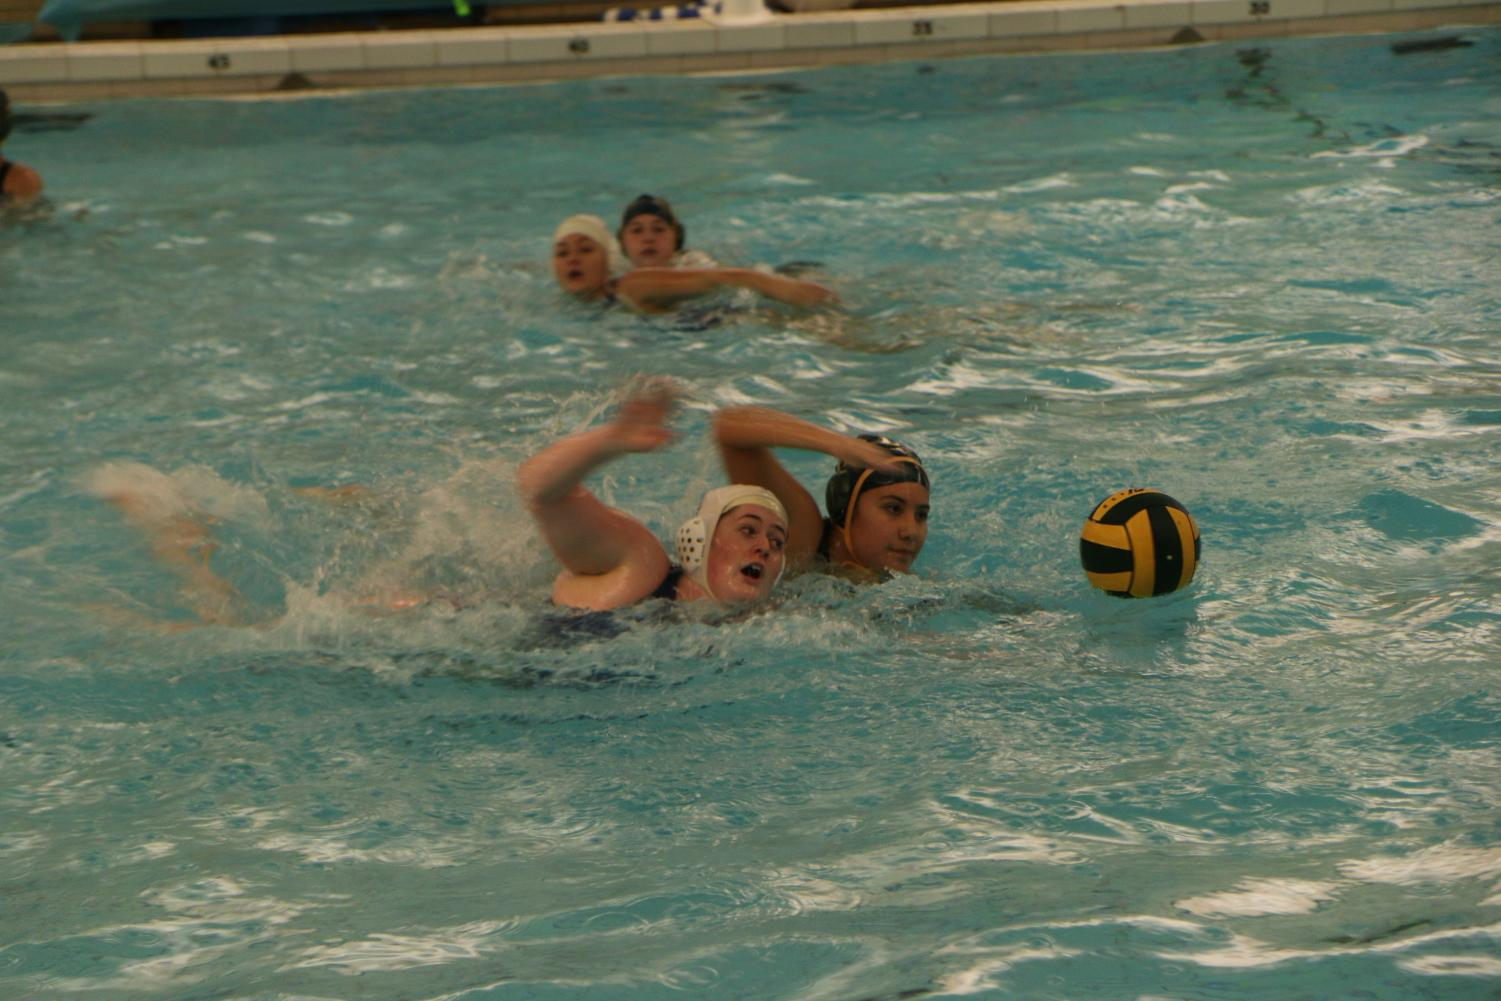 Ashling Staunton goes for the swim-off against a rival player. Whoever gets to the ball first would be in possession.